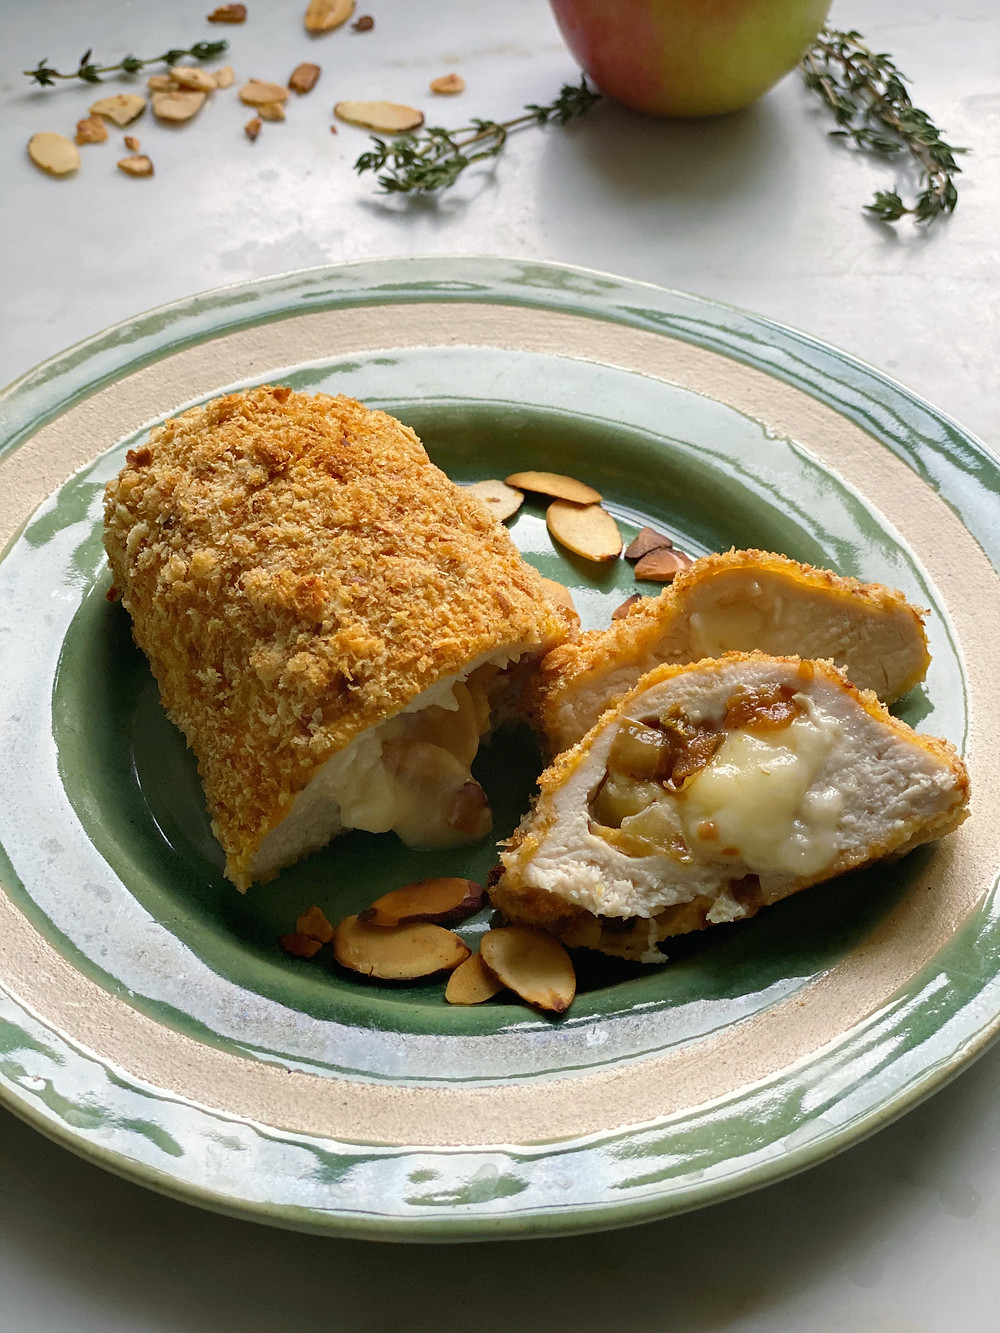 Apple-Almond-Brie Stuffed Chicken Breasts